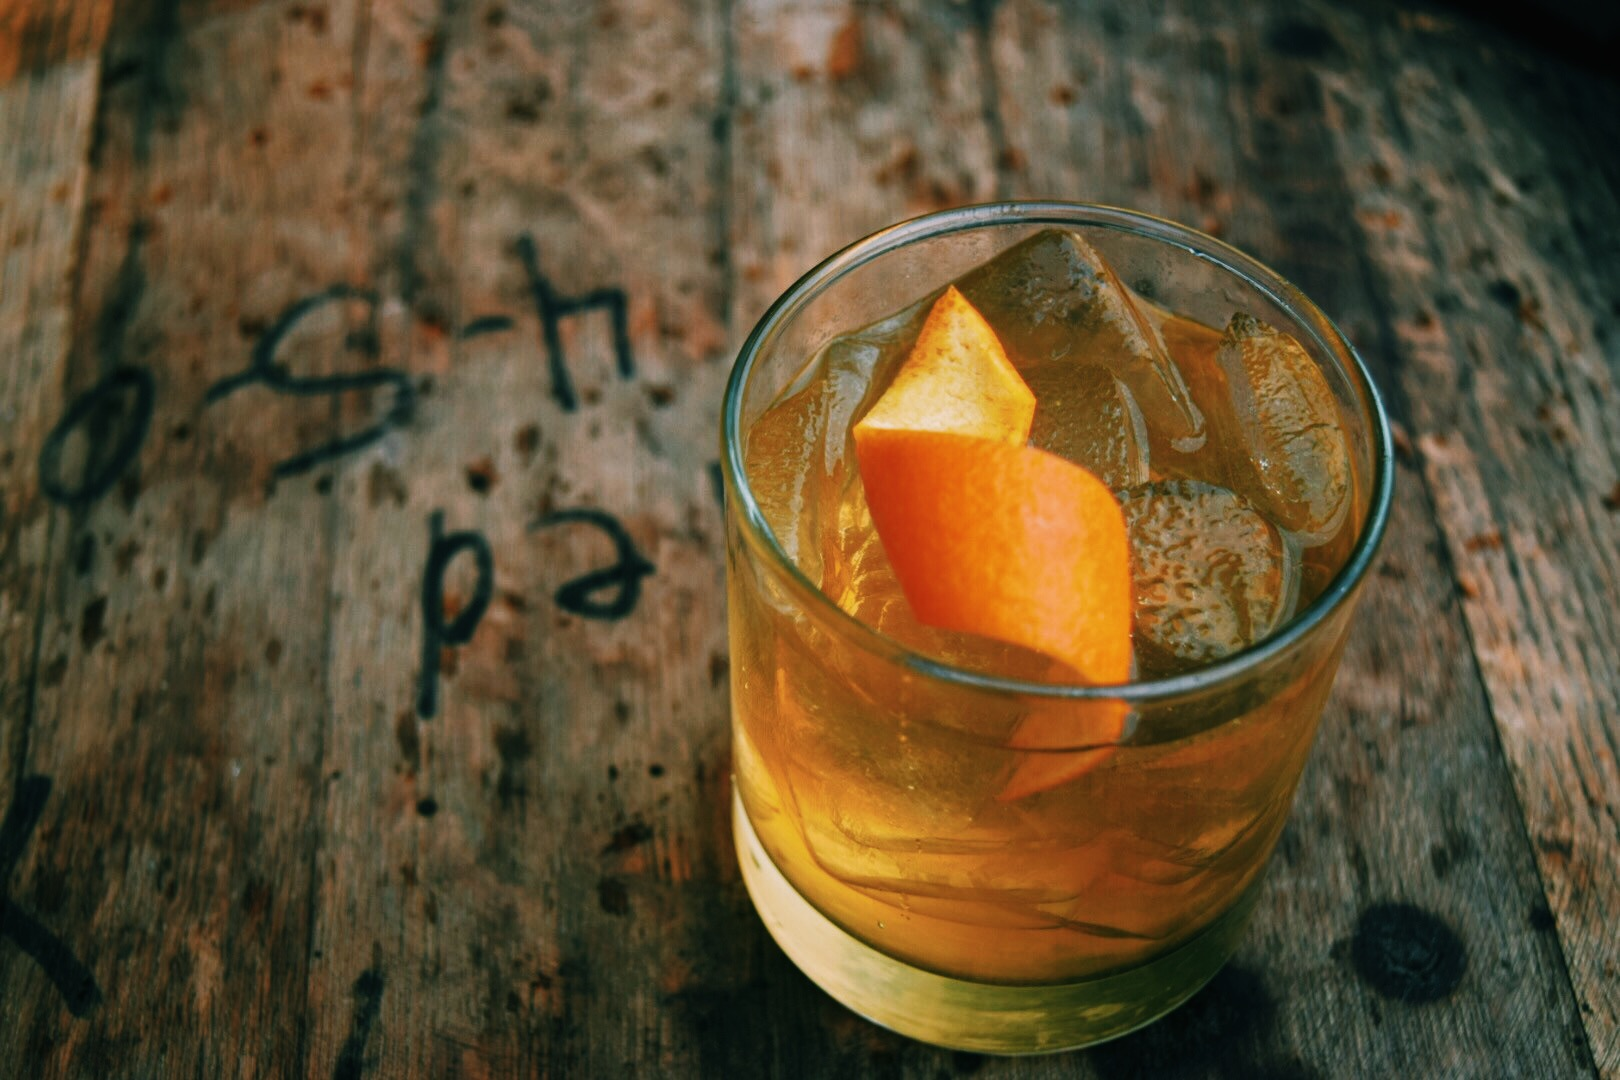 Milk Punch at Dock Street Cannery in Philadelphia. Photo by Sydney Countie